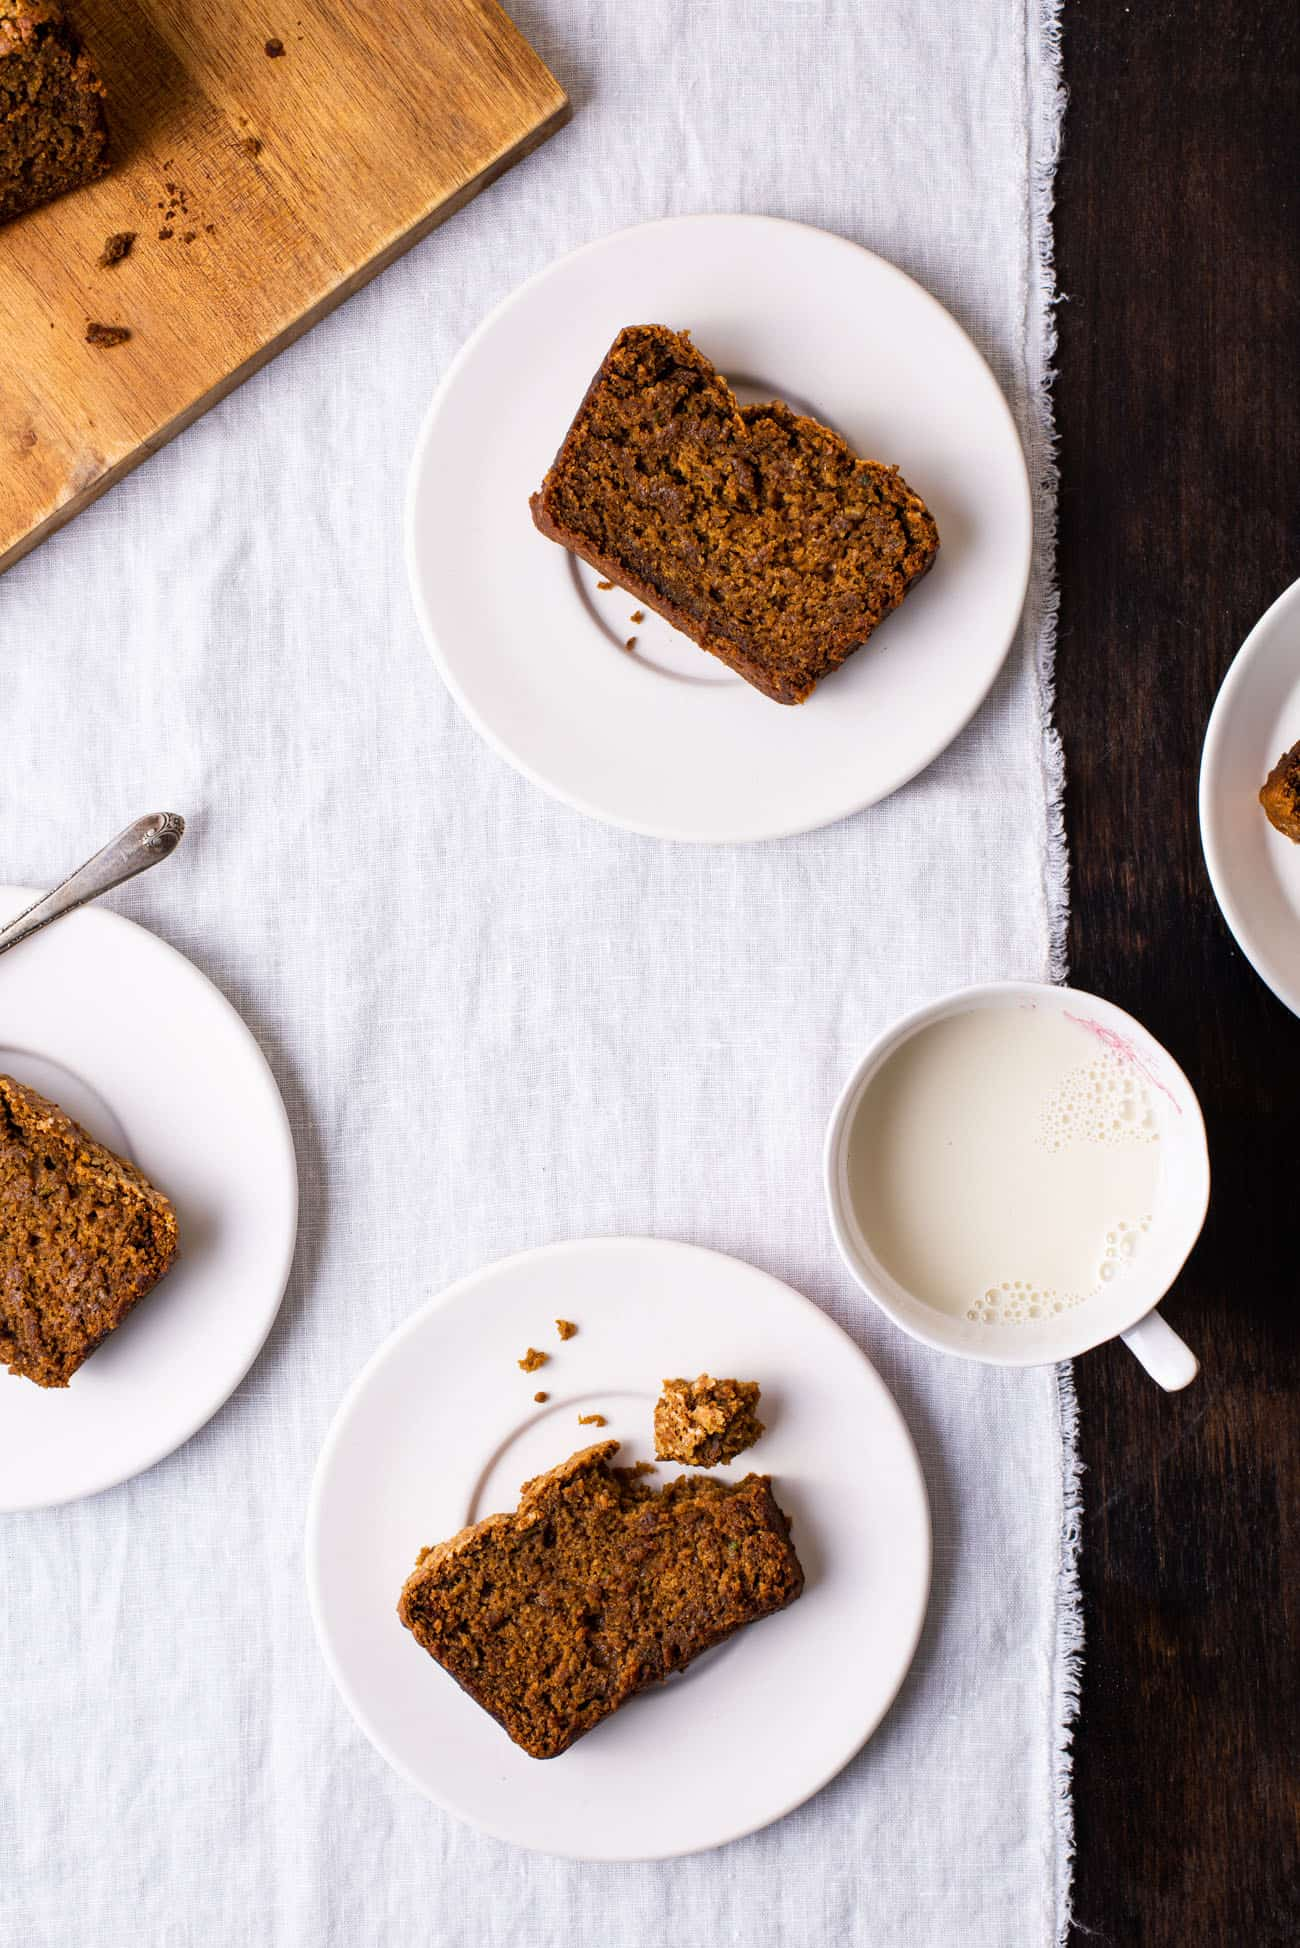 Slices of vegan gingerbread loaf cake on white plates on a white tablecloth next to a cup of milk